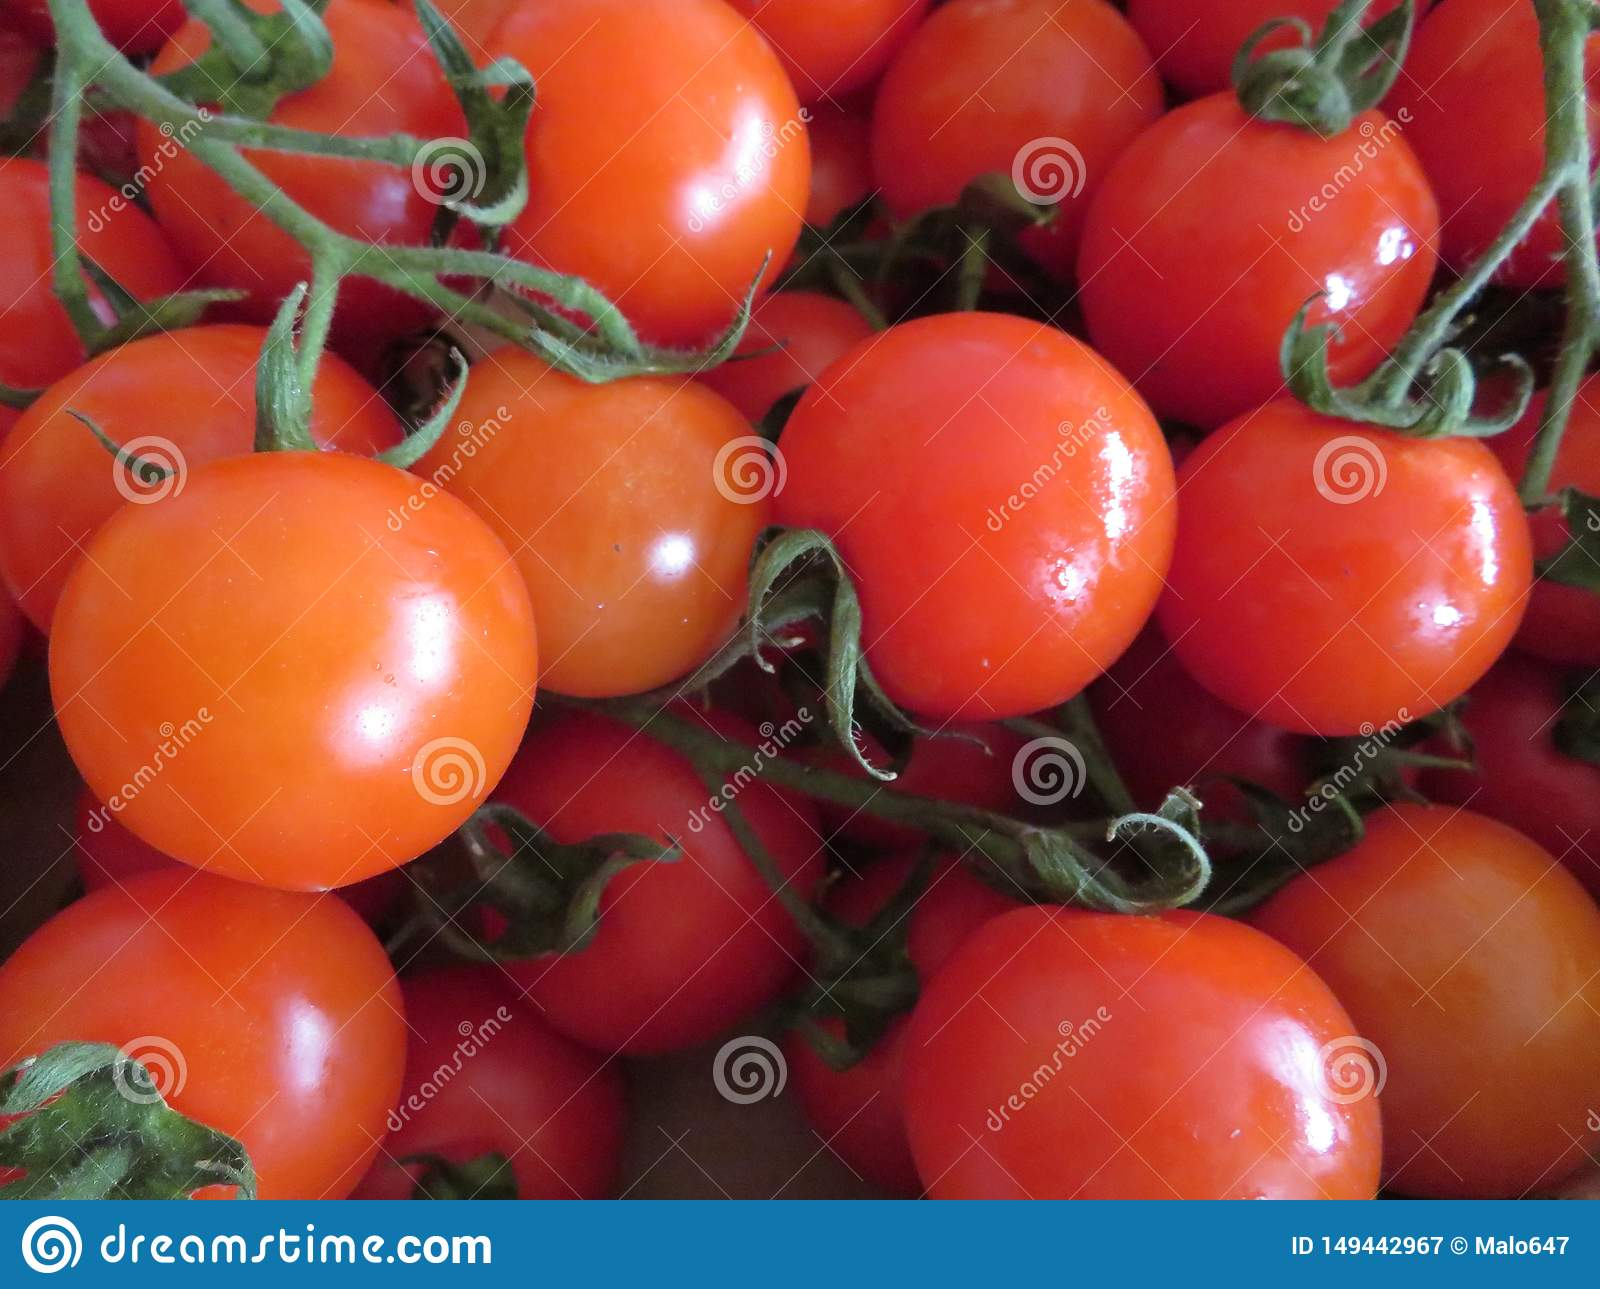 Delicious tomatoes with good looks and incredible color